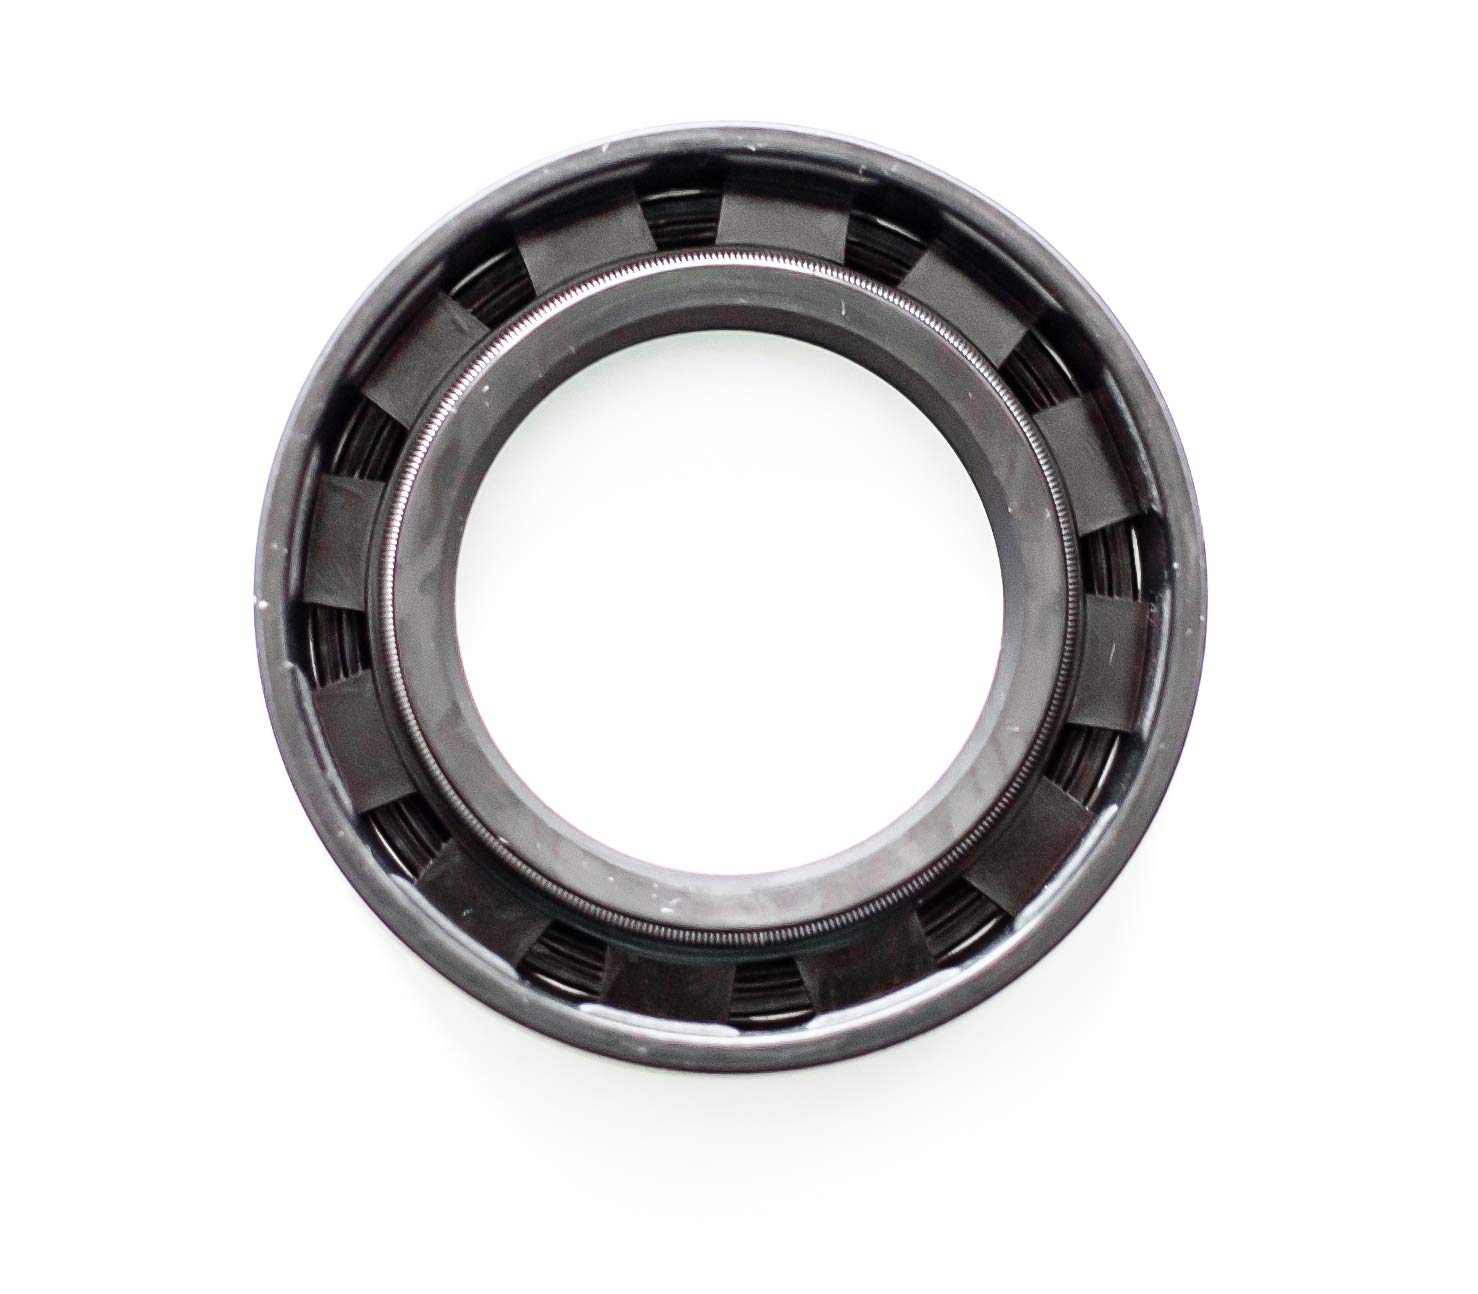 Oil Seal 30X50X10 Oil Seal Grease Seal TC  EAI Double Lip w//Garter Spring 1.181x1.969x0.394 Single Metal Case w//Nitrile Rubber Coating 30mmX50mmX10mm